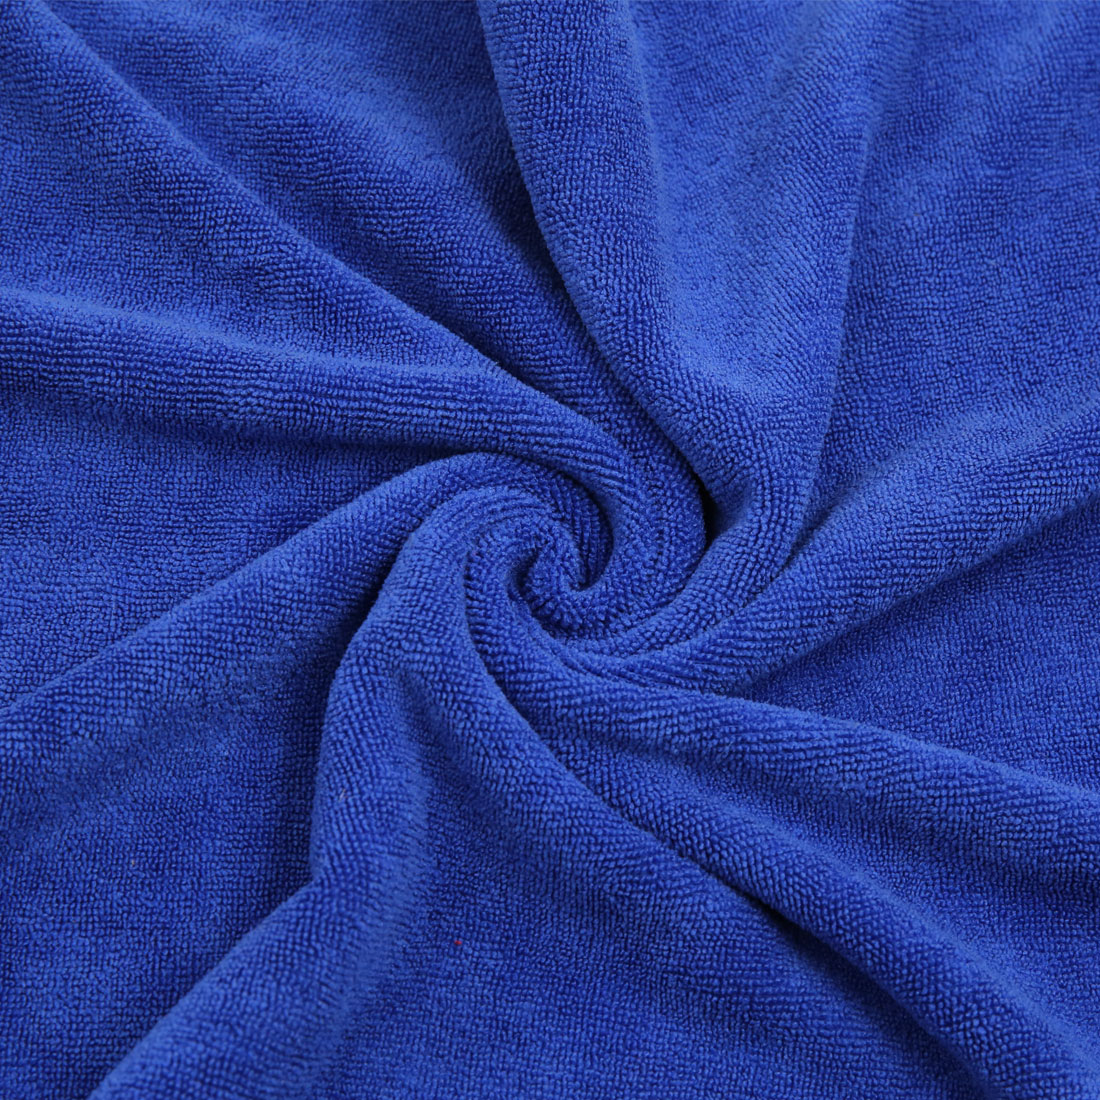 3 Pcs High Absorbing Microfiber Fabric, Polyester, Polymide Car Clean Cloth Towel No-scratched for Car Body - image 2 of 3